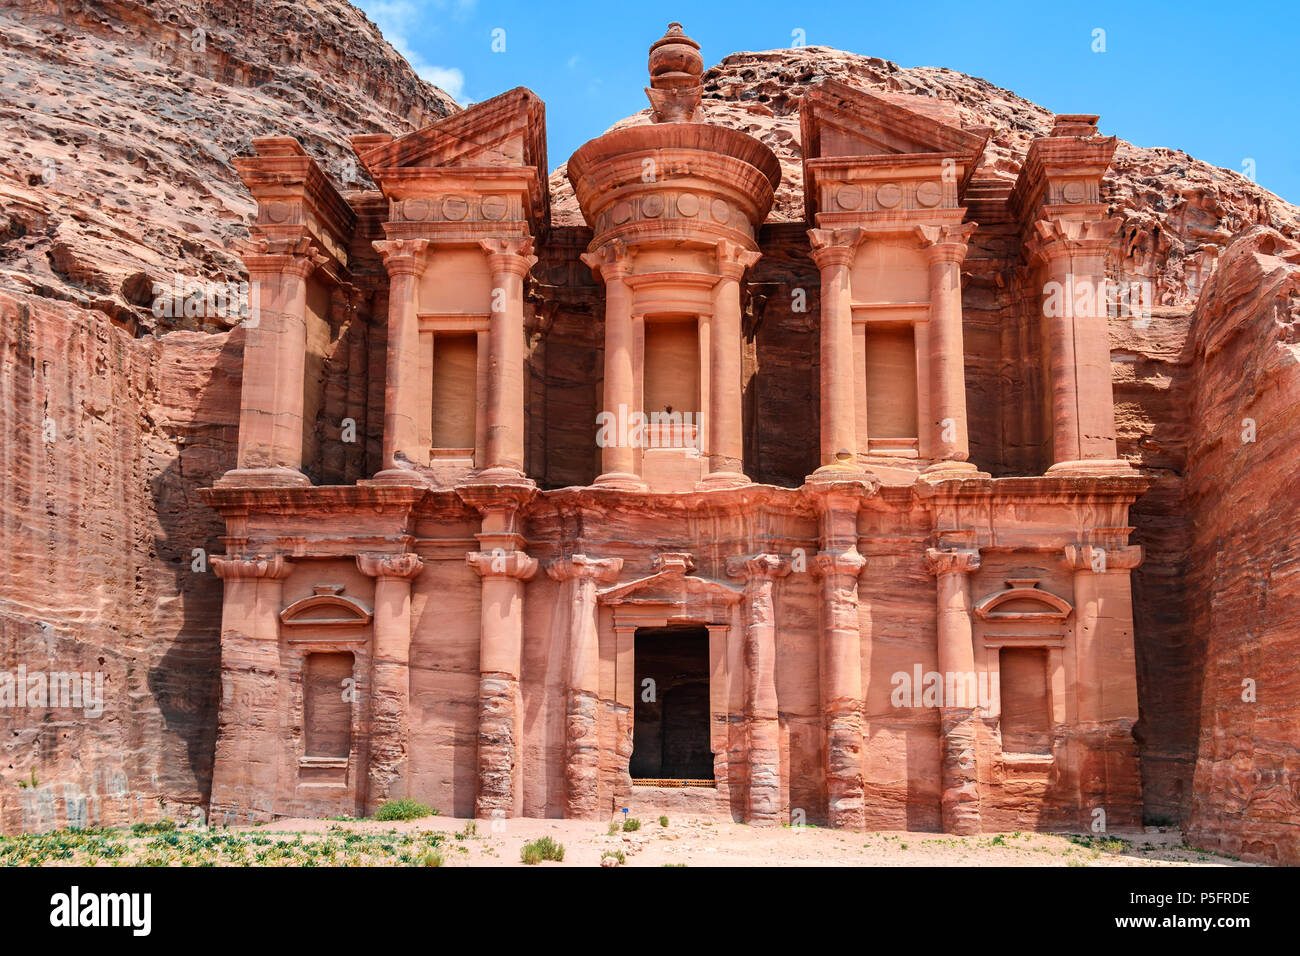 The Monastery in the Lost City of Petra, Jordan - Stock Image